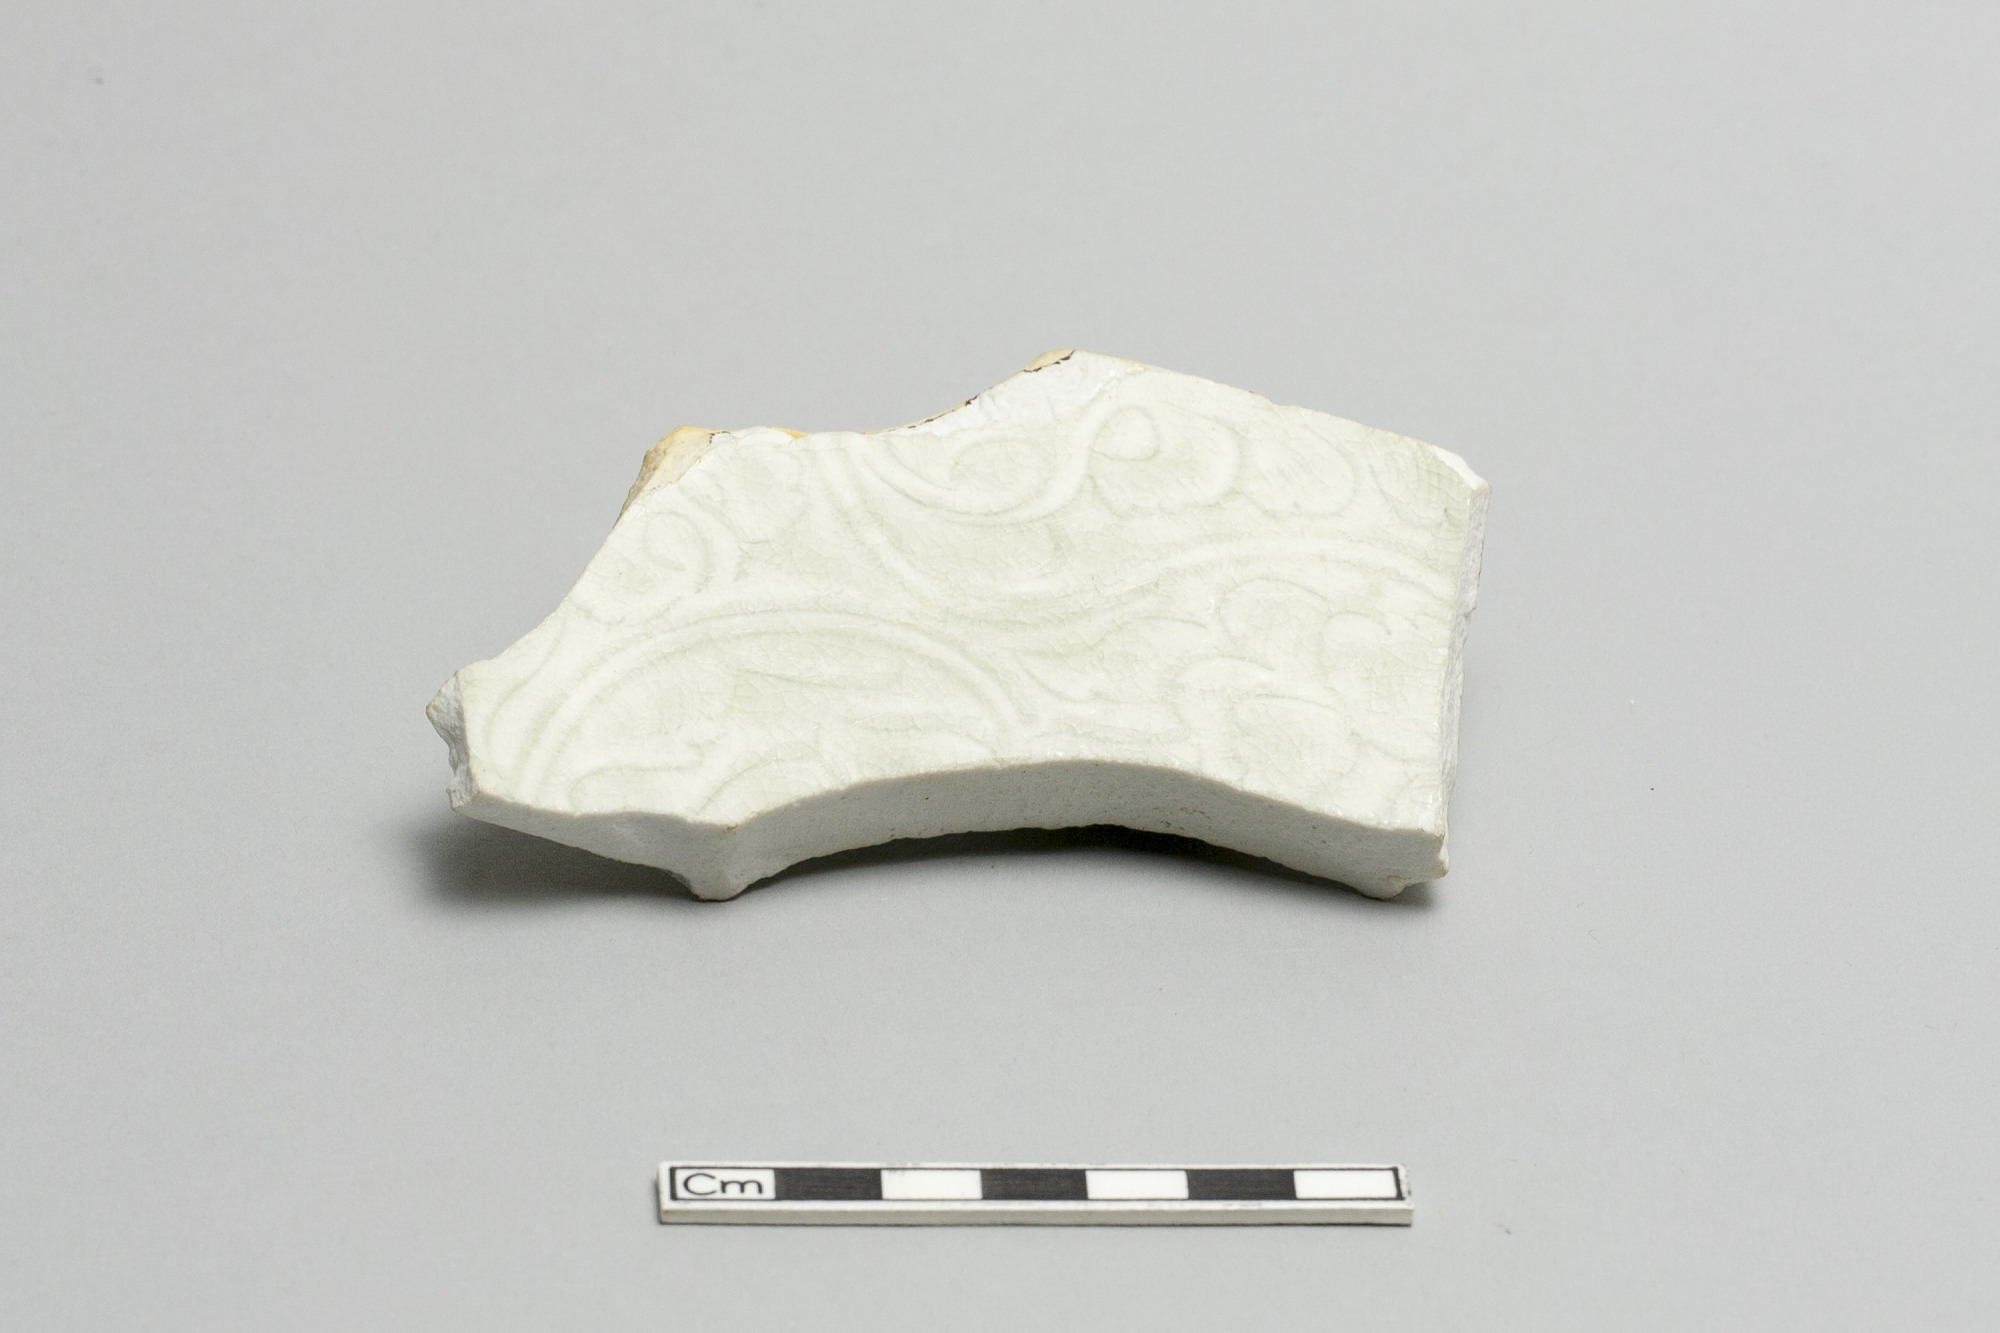 Base of a dish or bowl